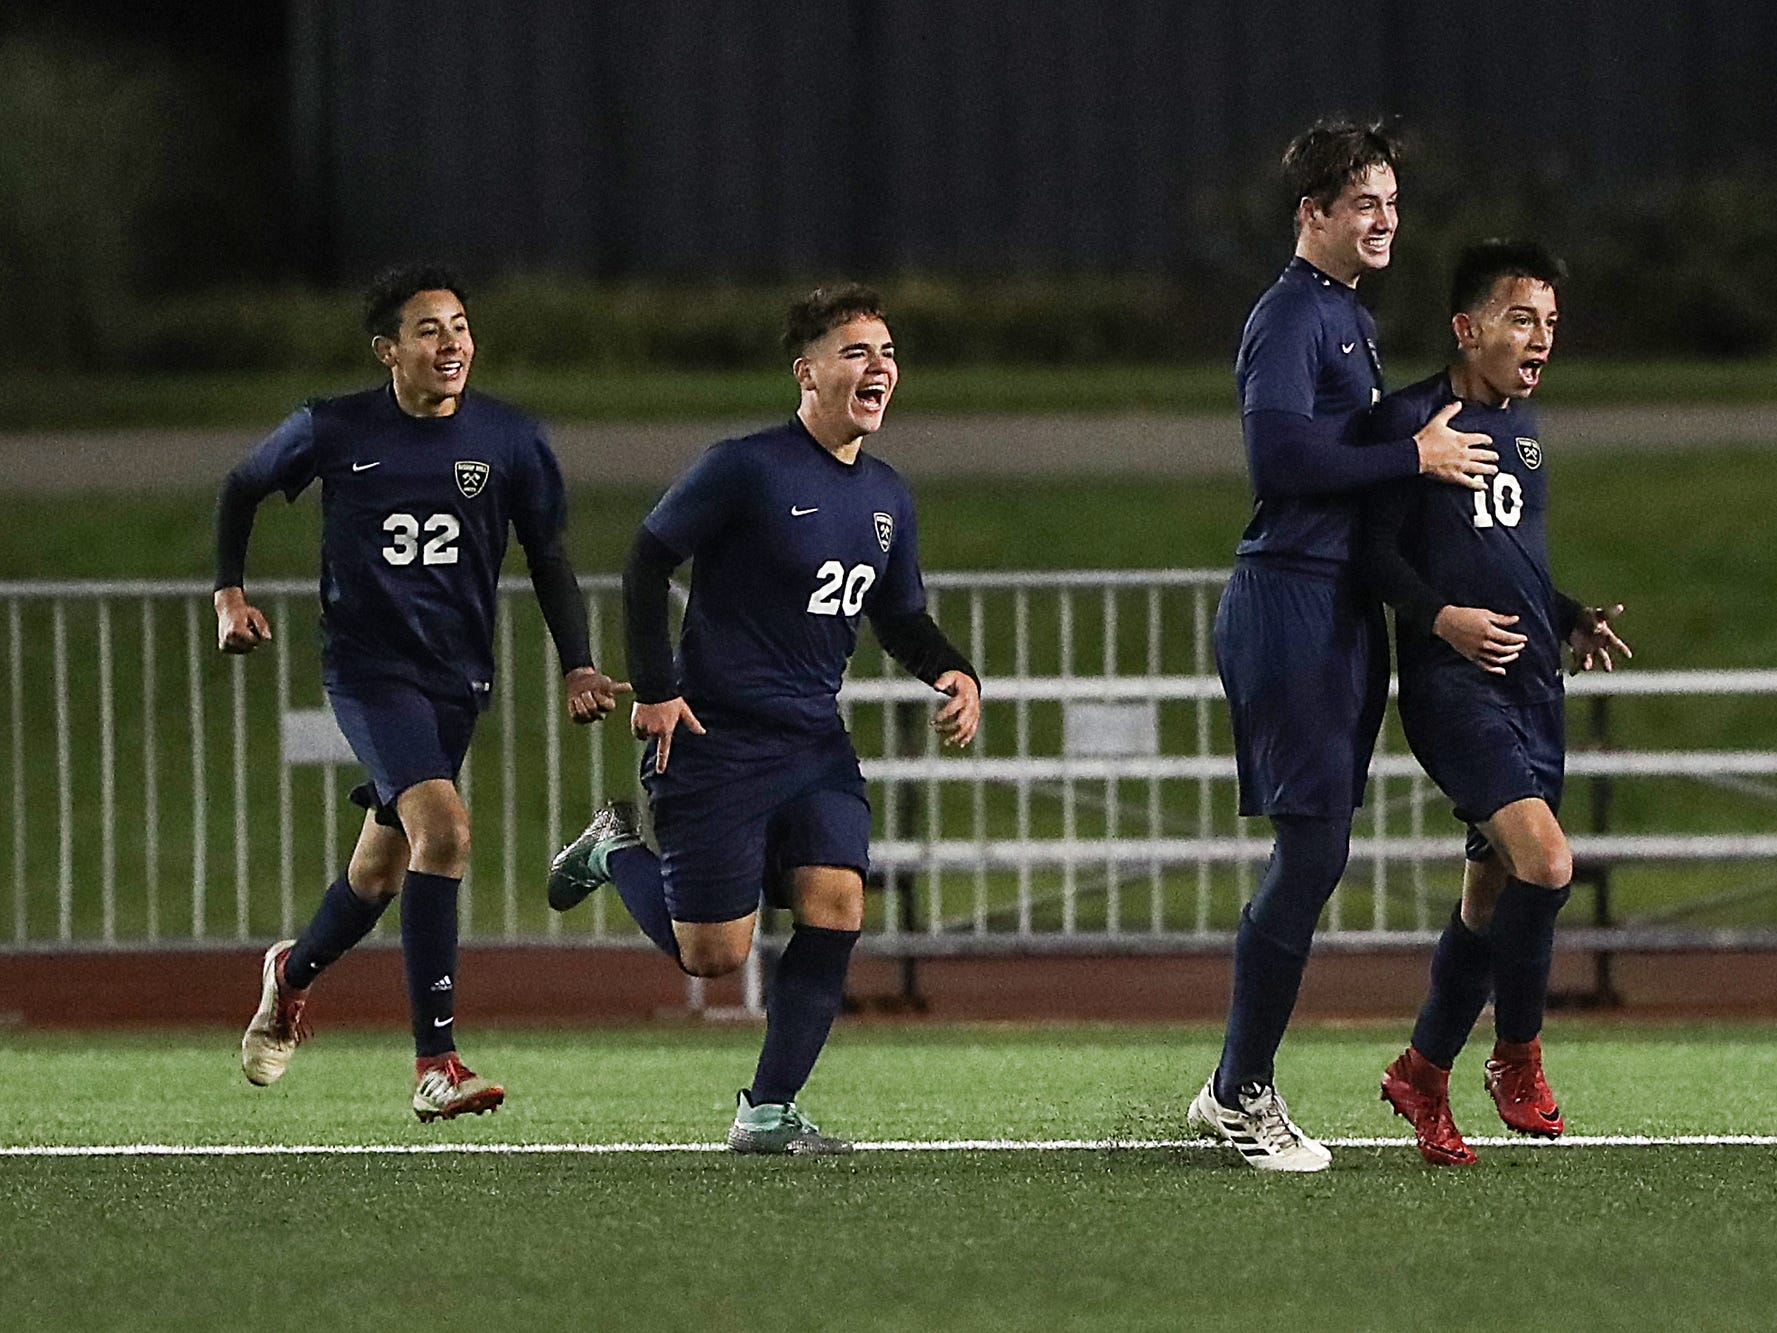 The Hammond Bishop Noll Warriors celebrate a goal by Bruno Zamora (10) during the second half of IHSAA class 2A state finals at IUPUI's Michael A. Carroll Stadium in Indianapolis, Friday, Oct. 26, 2018. Hammond Bishop Noll defeated Cardinal Ritter, 1-0.